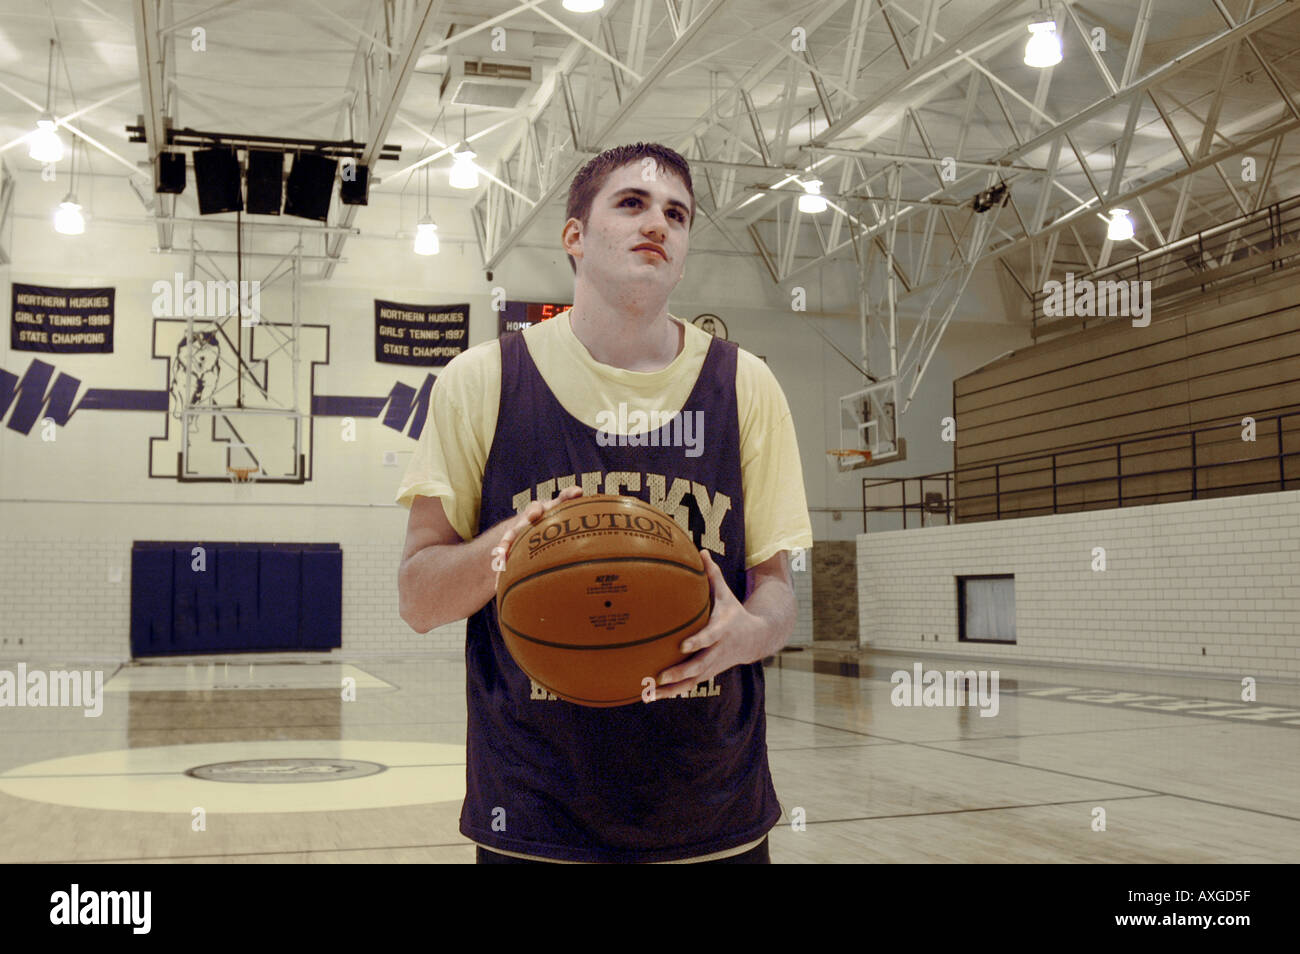 high basketball player stands at the free throw line under